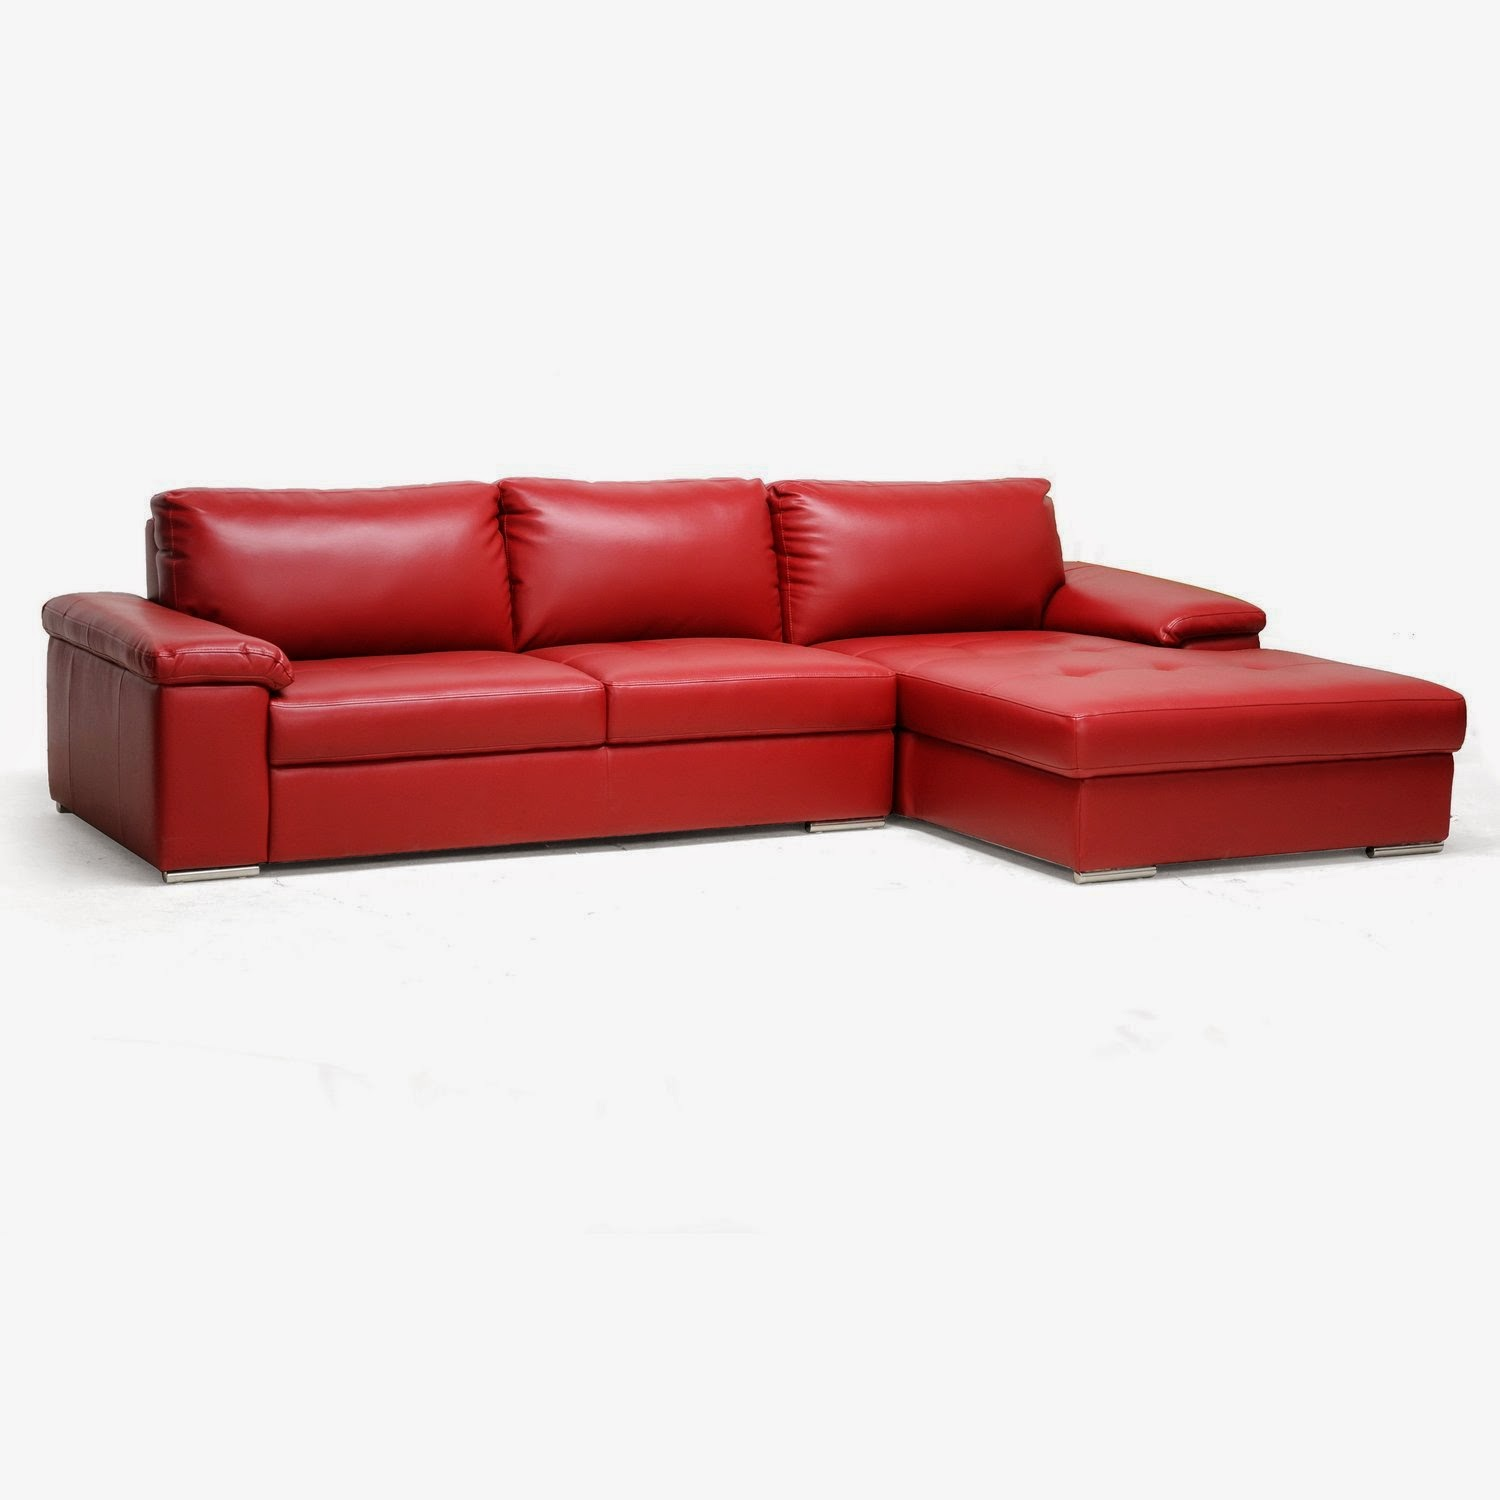 Red couch red leather sectional couch for Leather sectional sofa